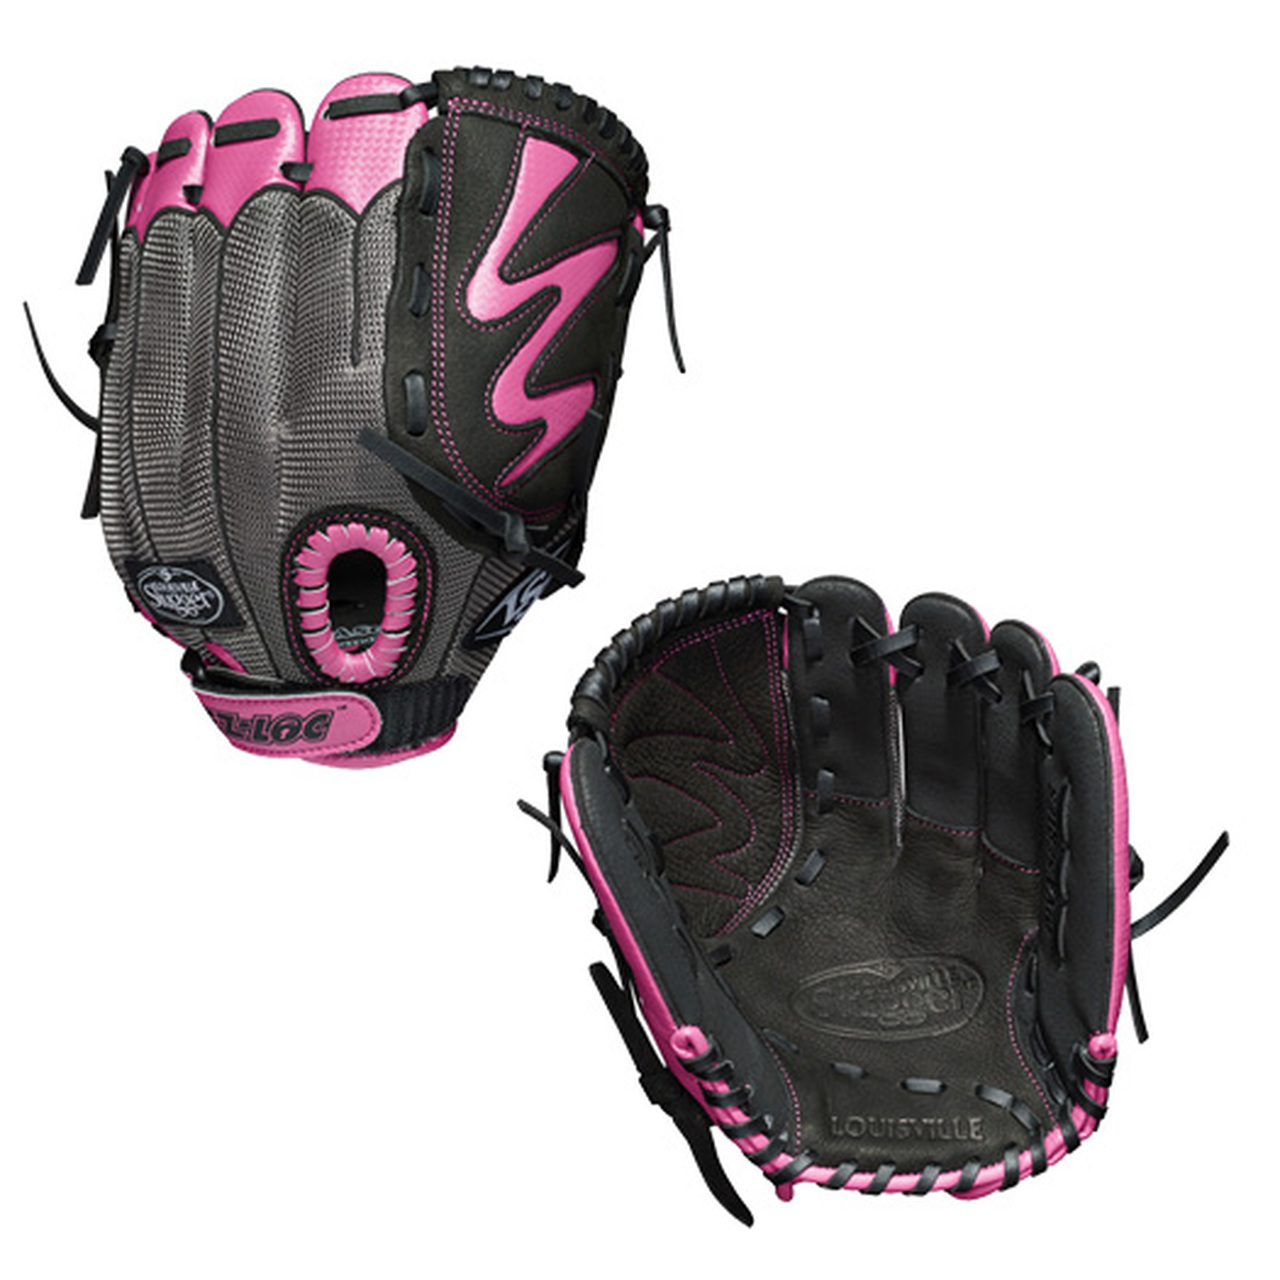 "LDVRB19105 Louisville Slugger Diva 10.5"" Youth Fastpitch Softball Glove - Regular MAIN"